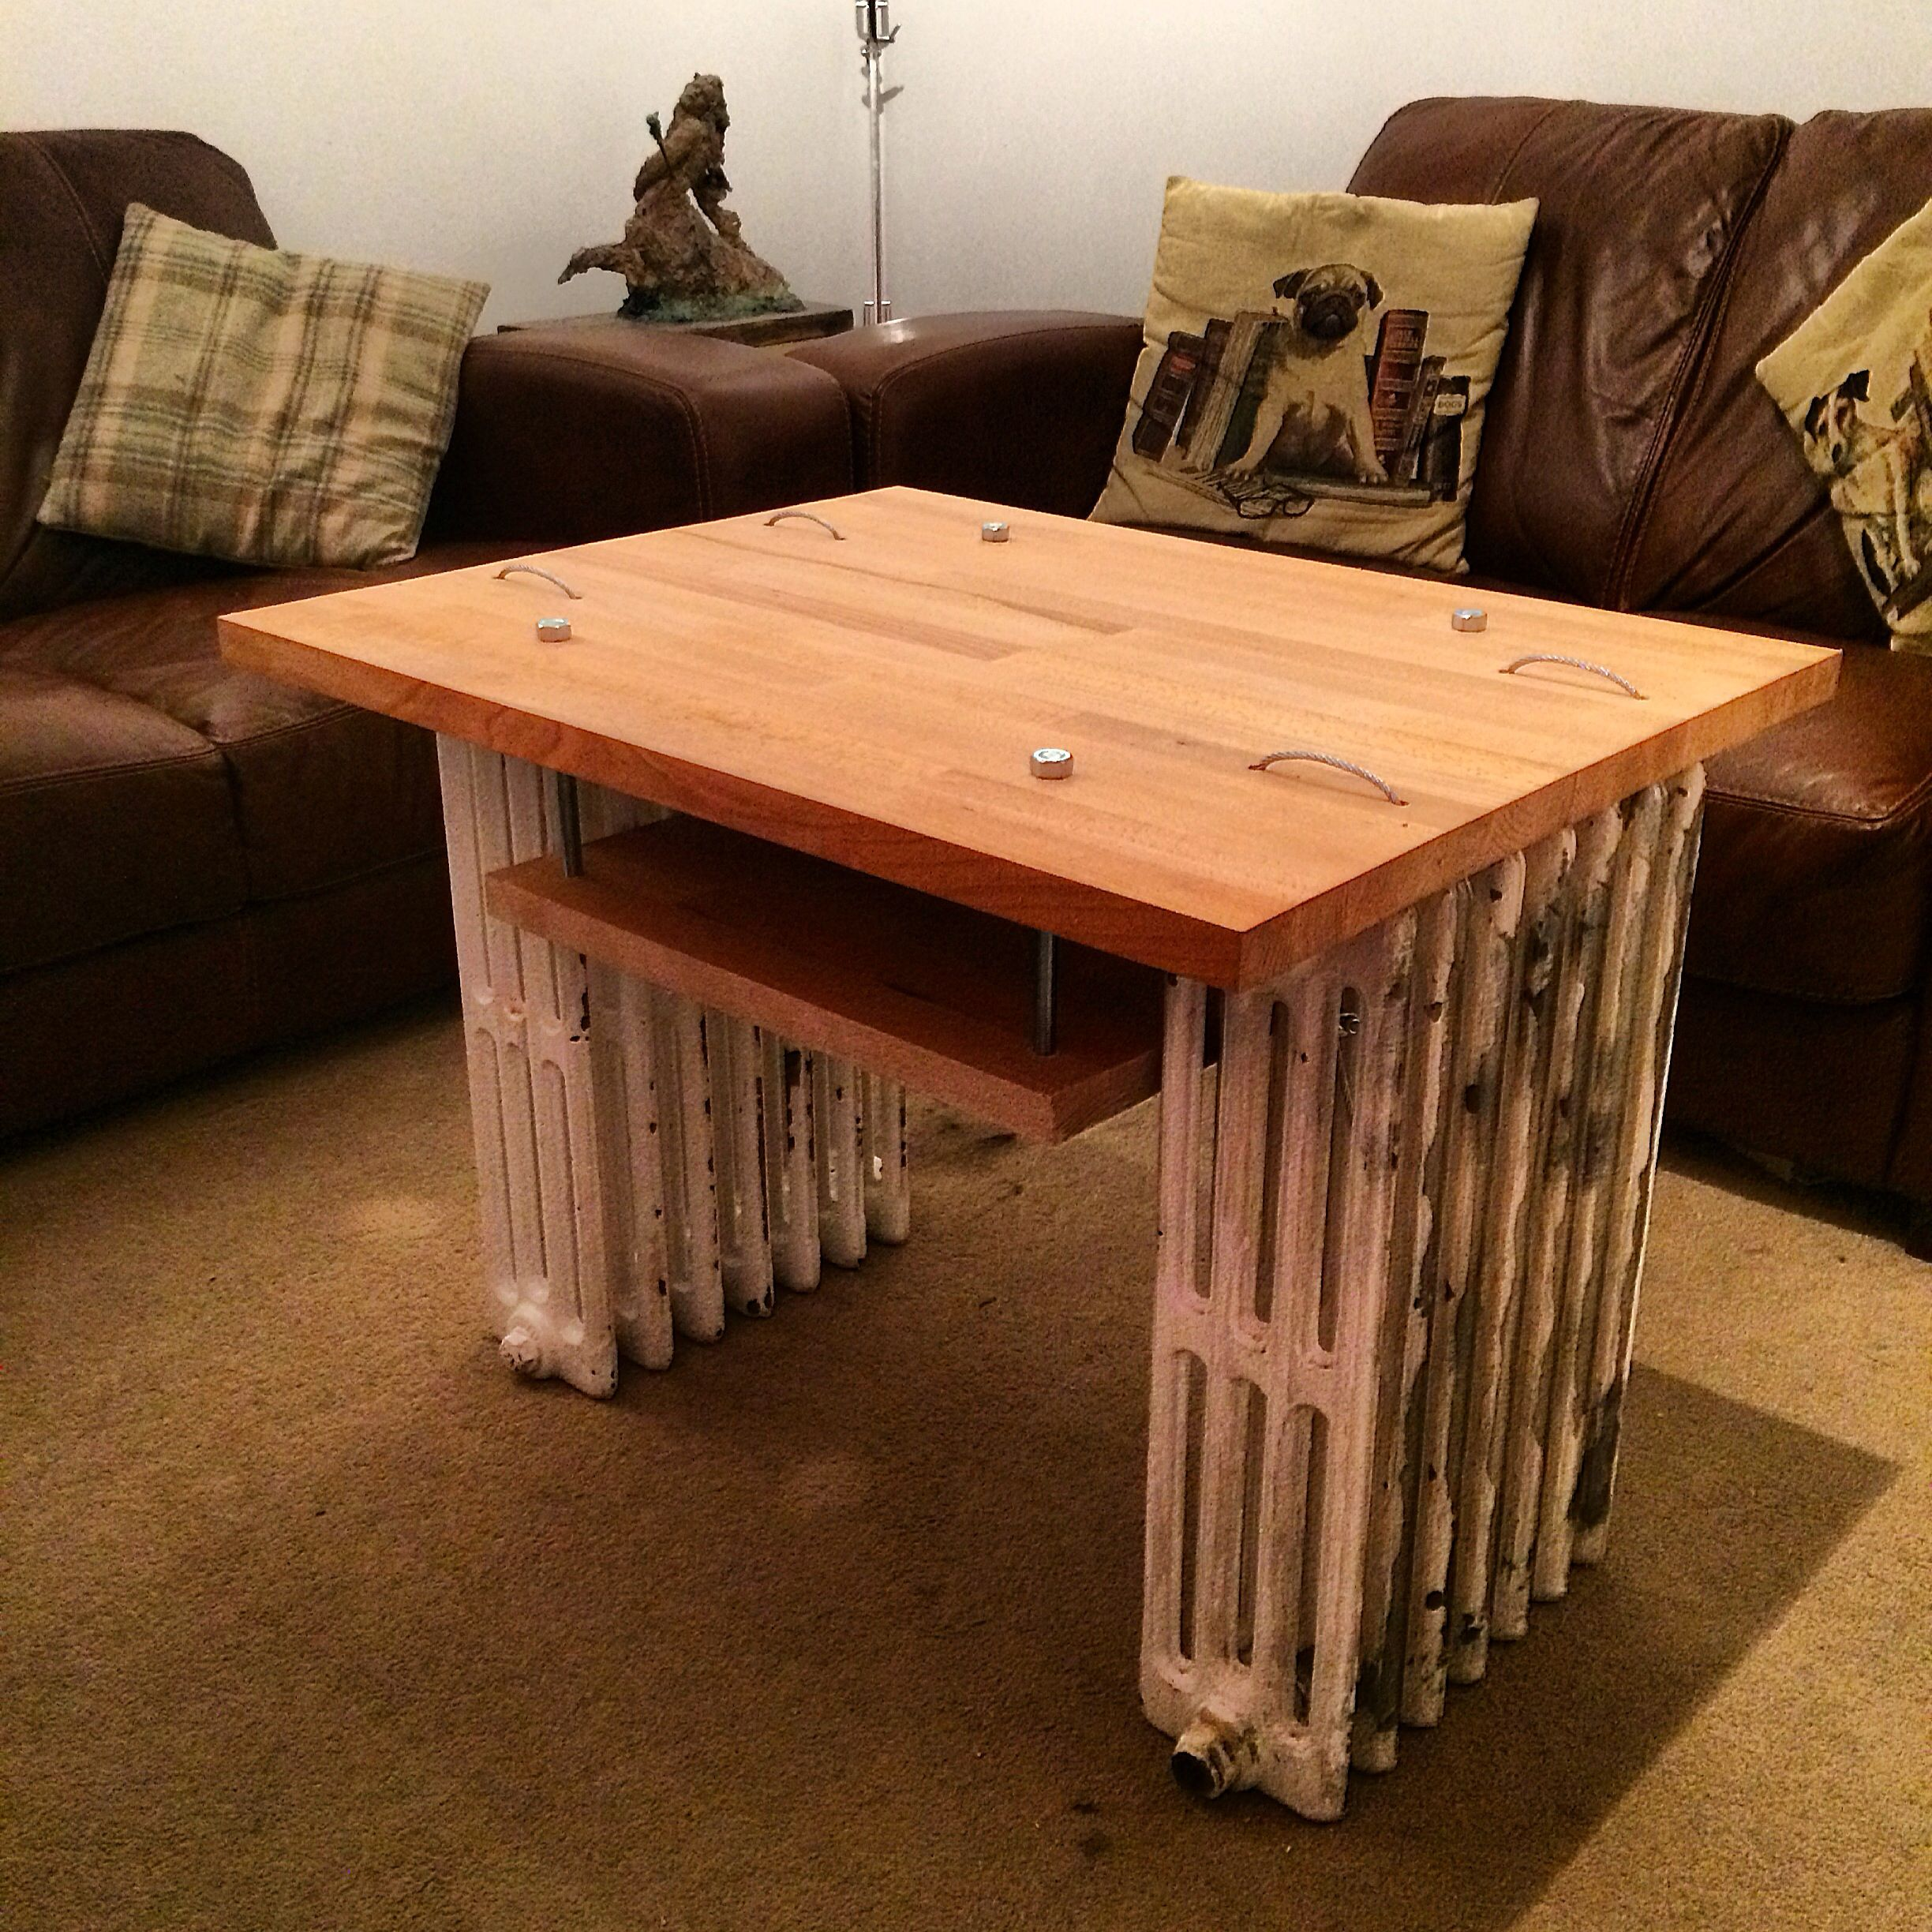 Upcycled coffee table. Old cast iron radiators, wire rope